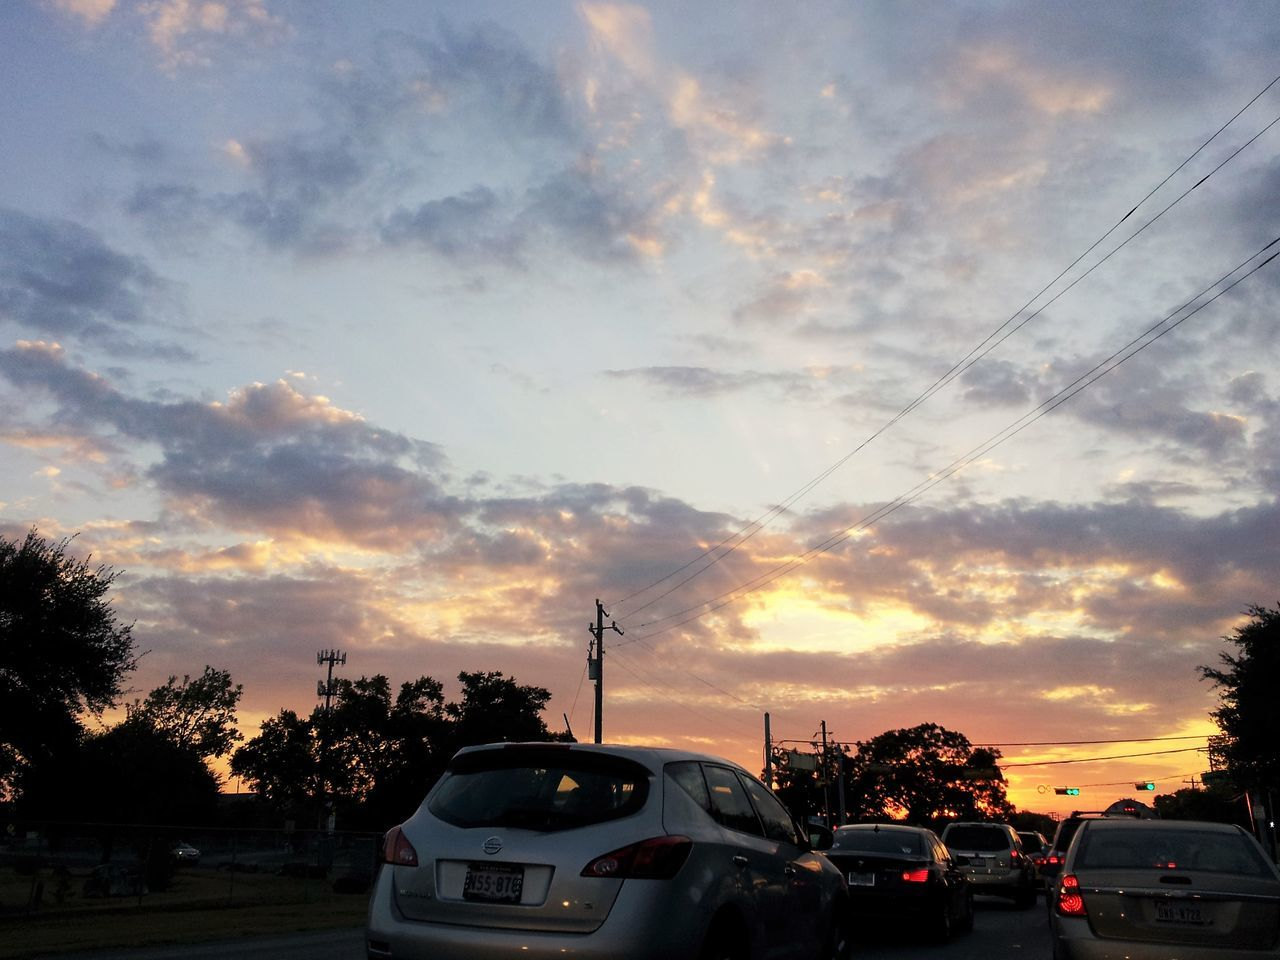 car, sunset, cloud - sky, sky, land vehicle, transportation, mode of transport, tree, outdoors, no people, road, nature, beauty in nature, day